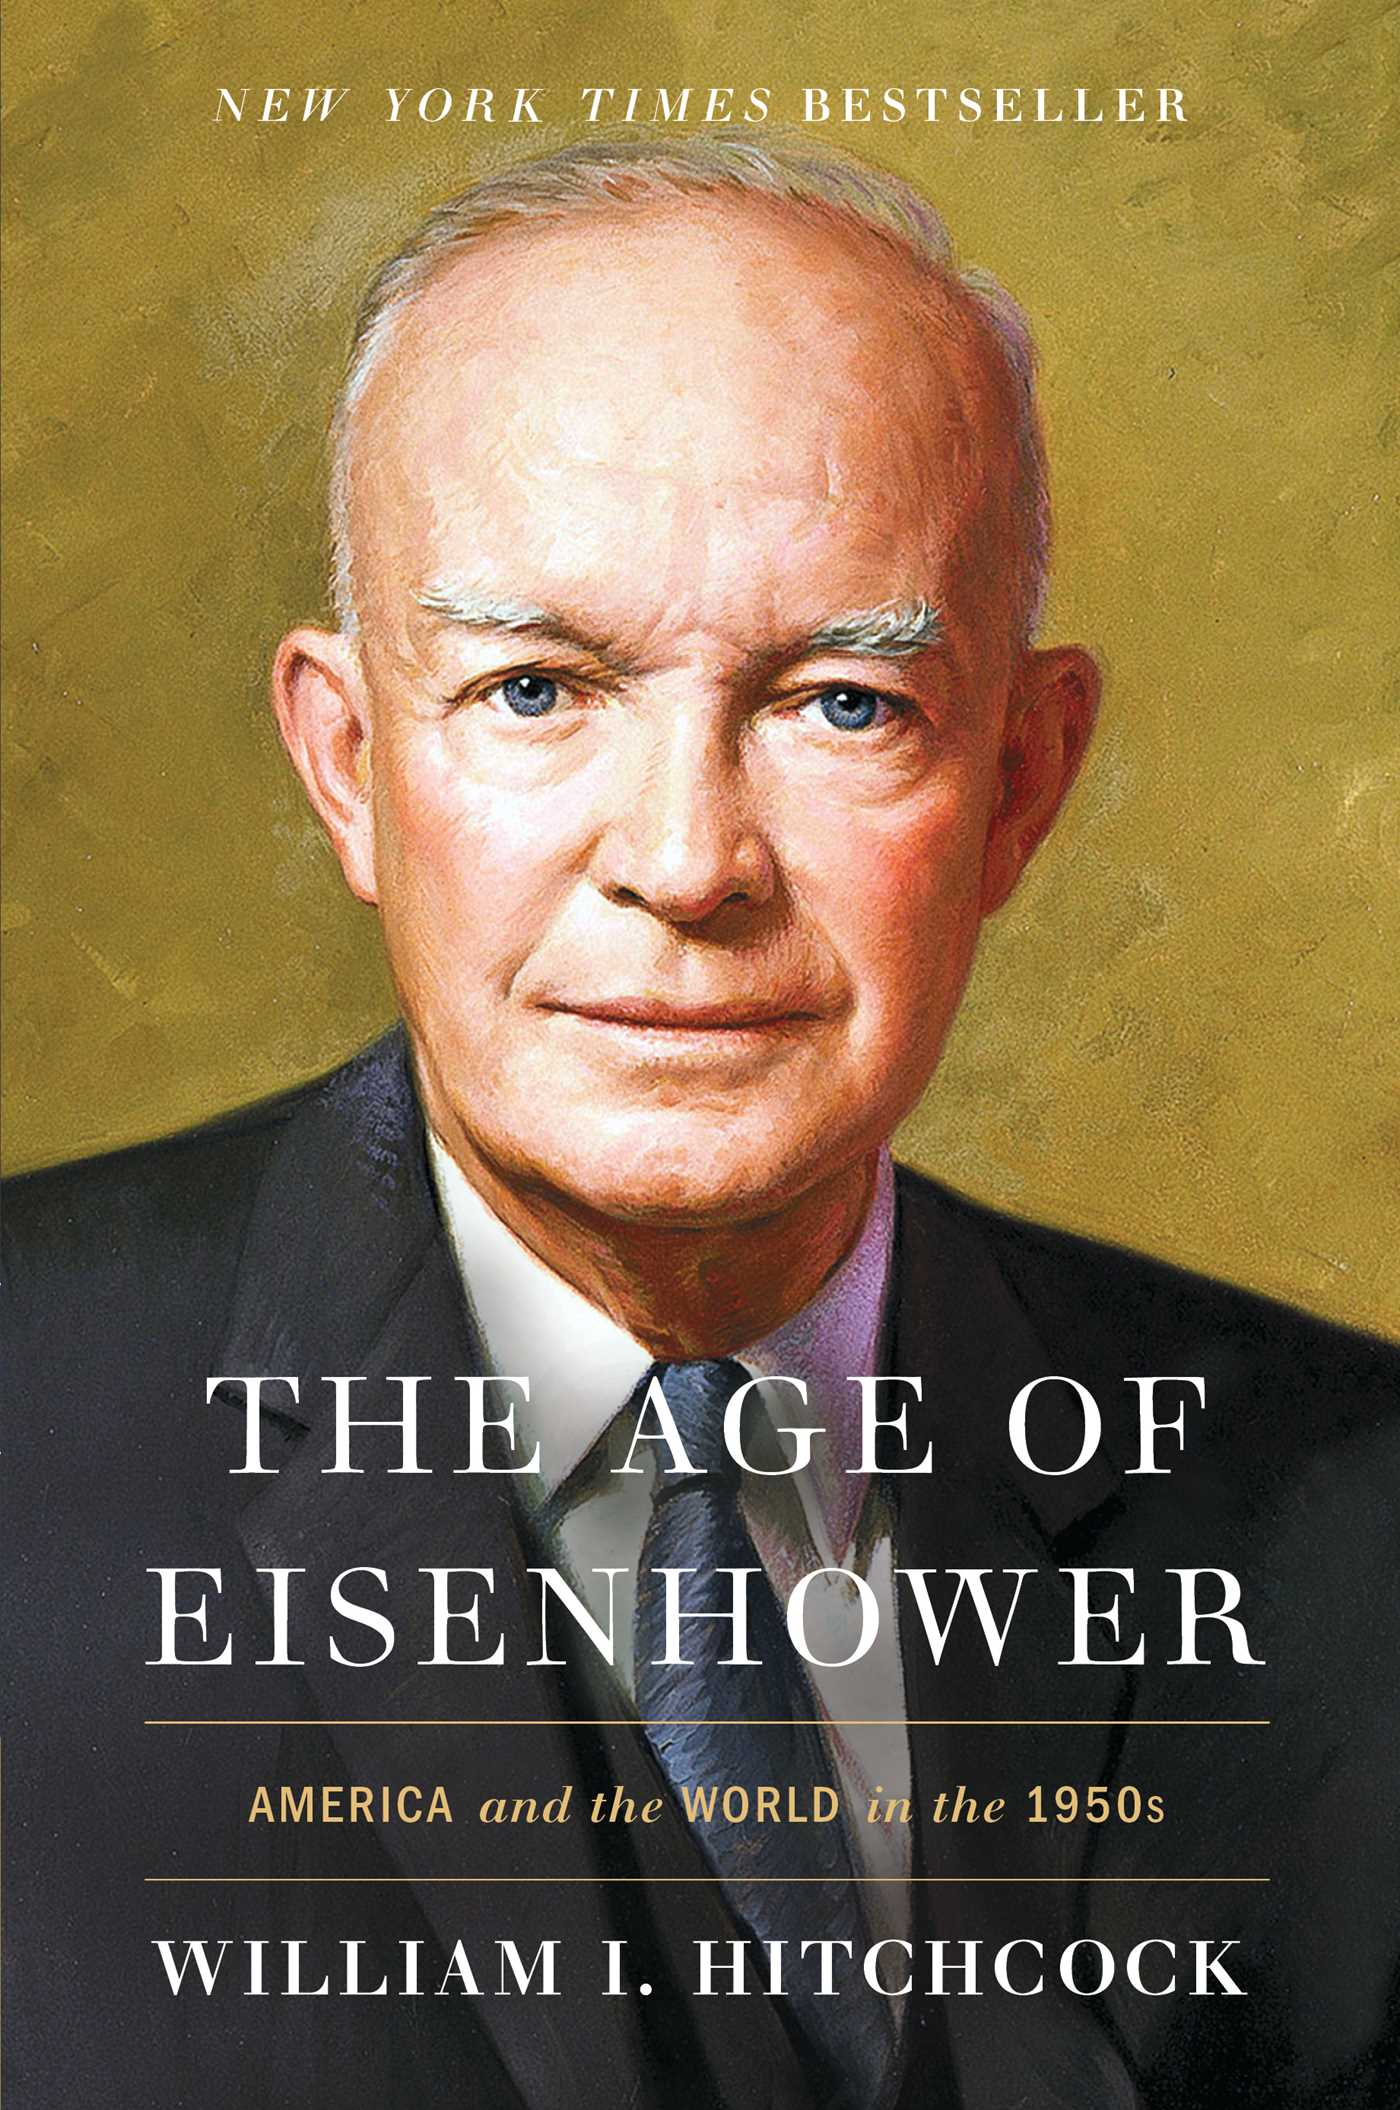 The age of eisenhower 9781439175668 hr